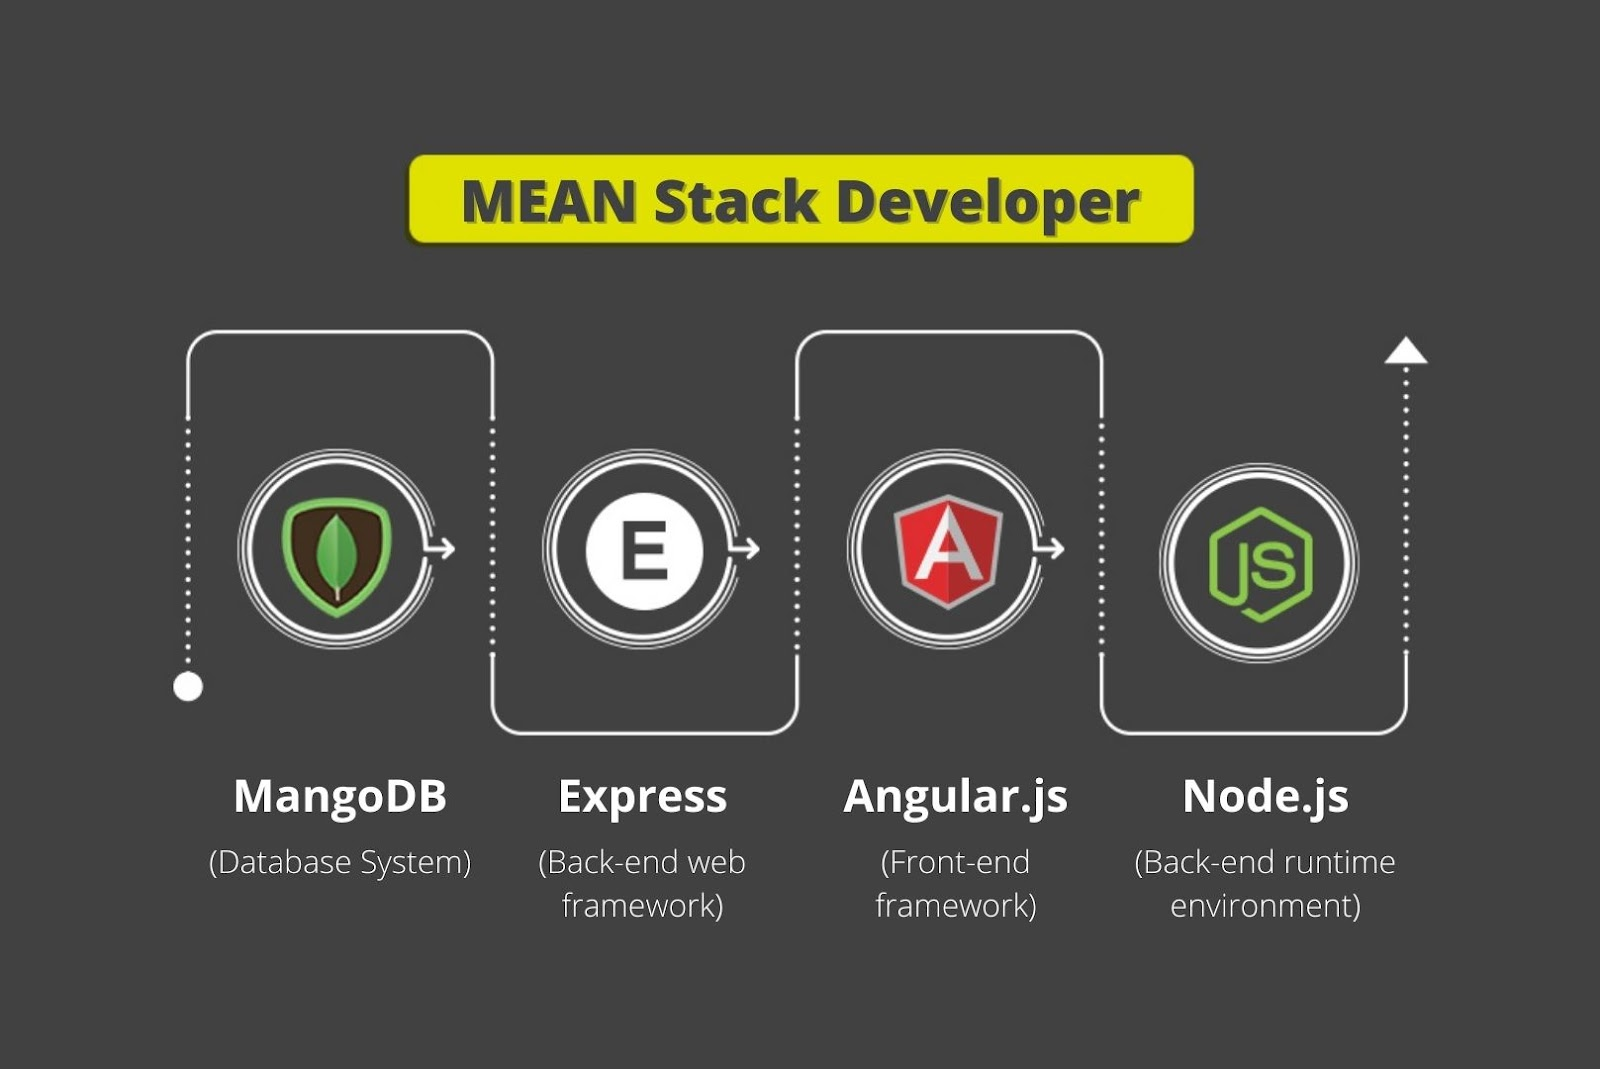 Mean stack developer